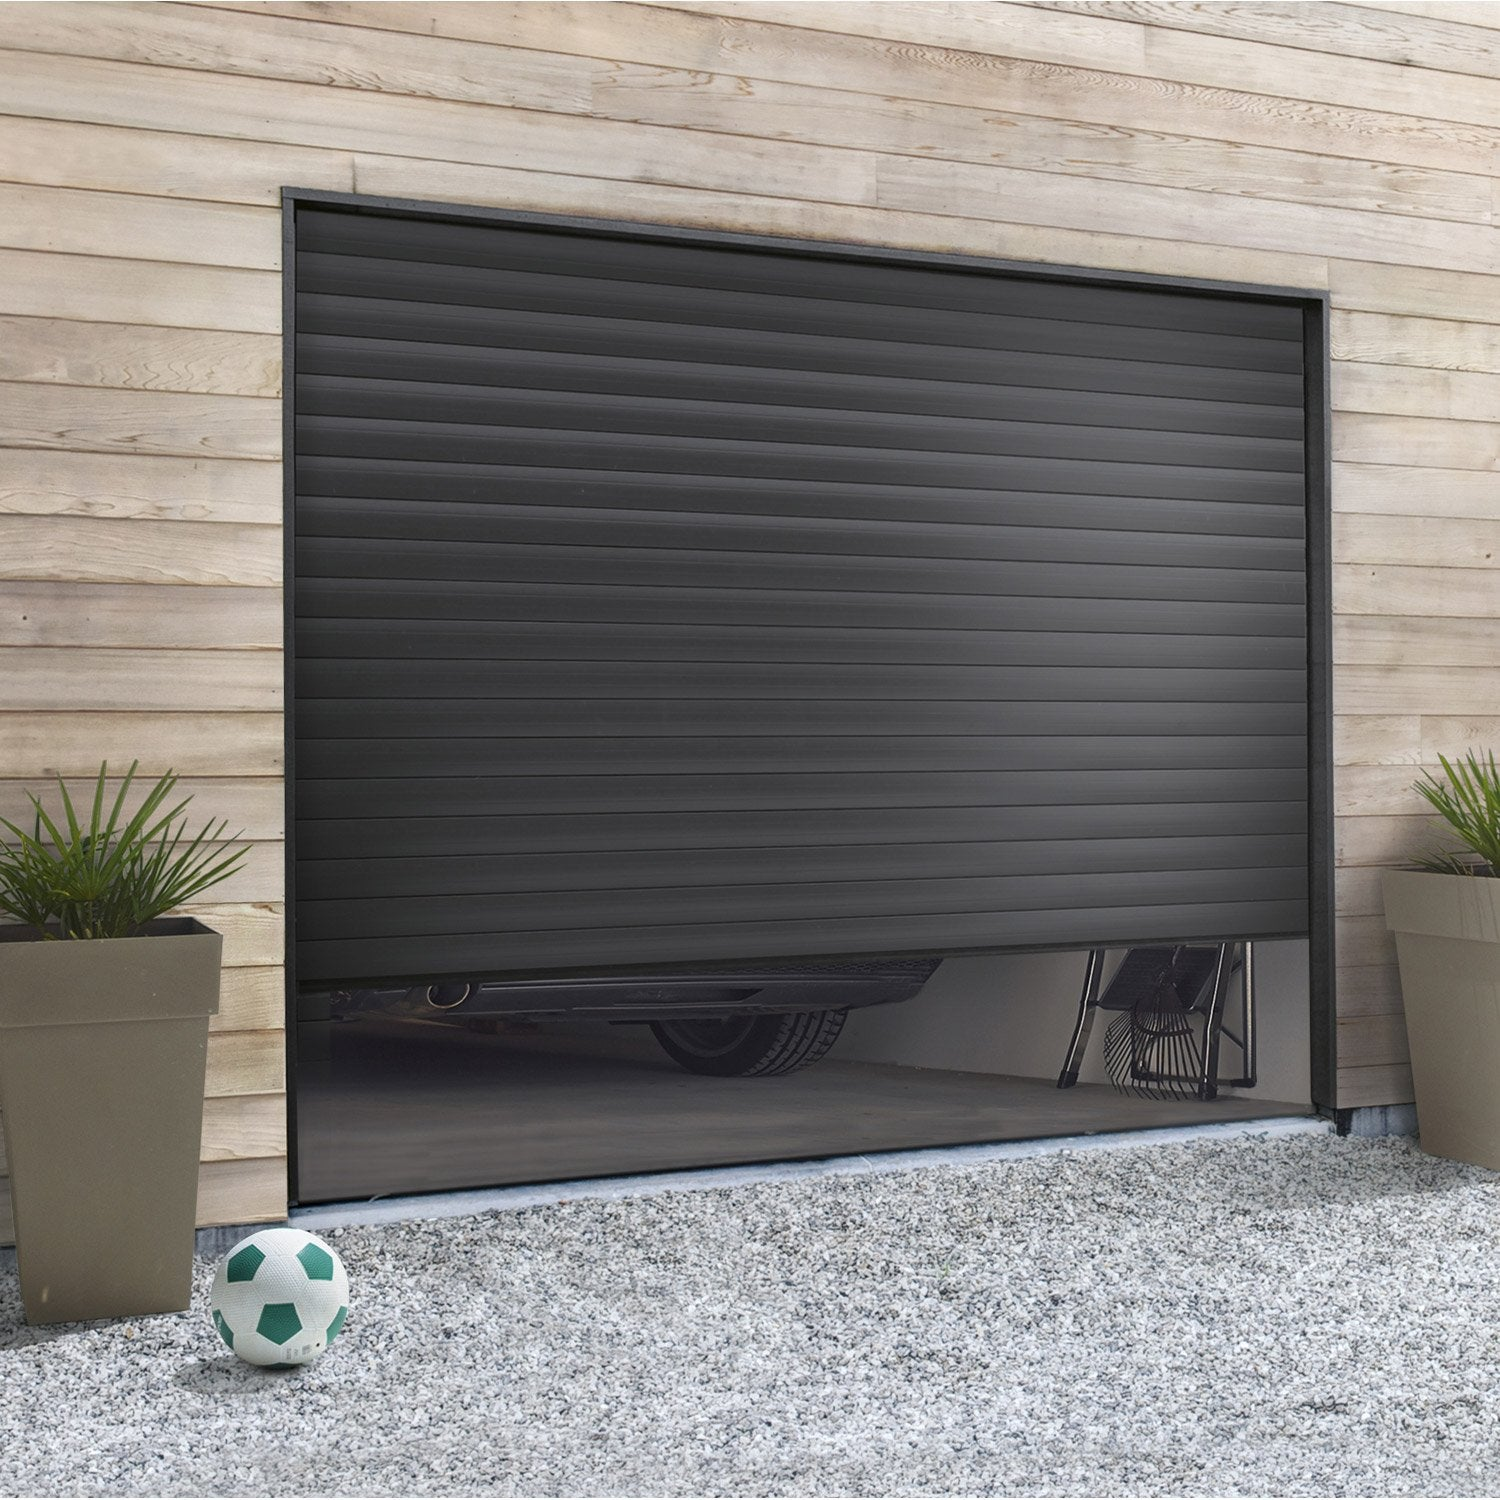 Pose d 39 une porte de garage enroulable leroy merlin for Porte de garage enroulable coffre exterieur